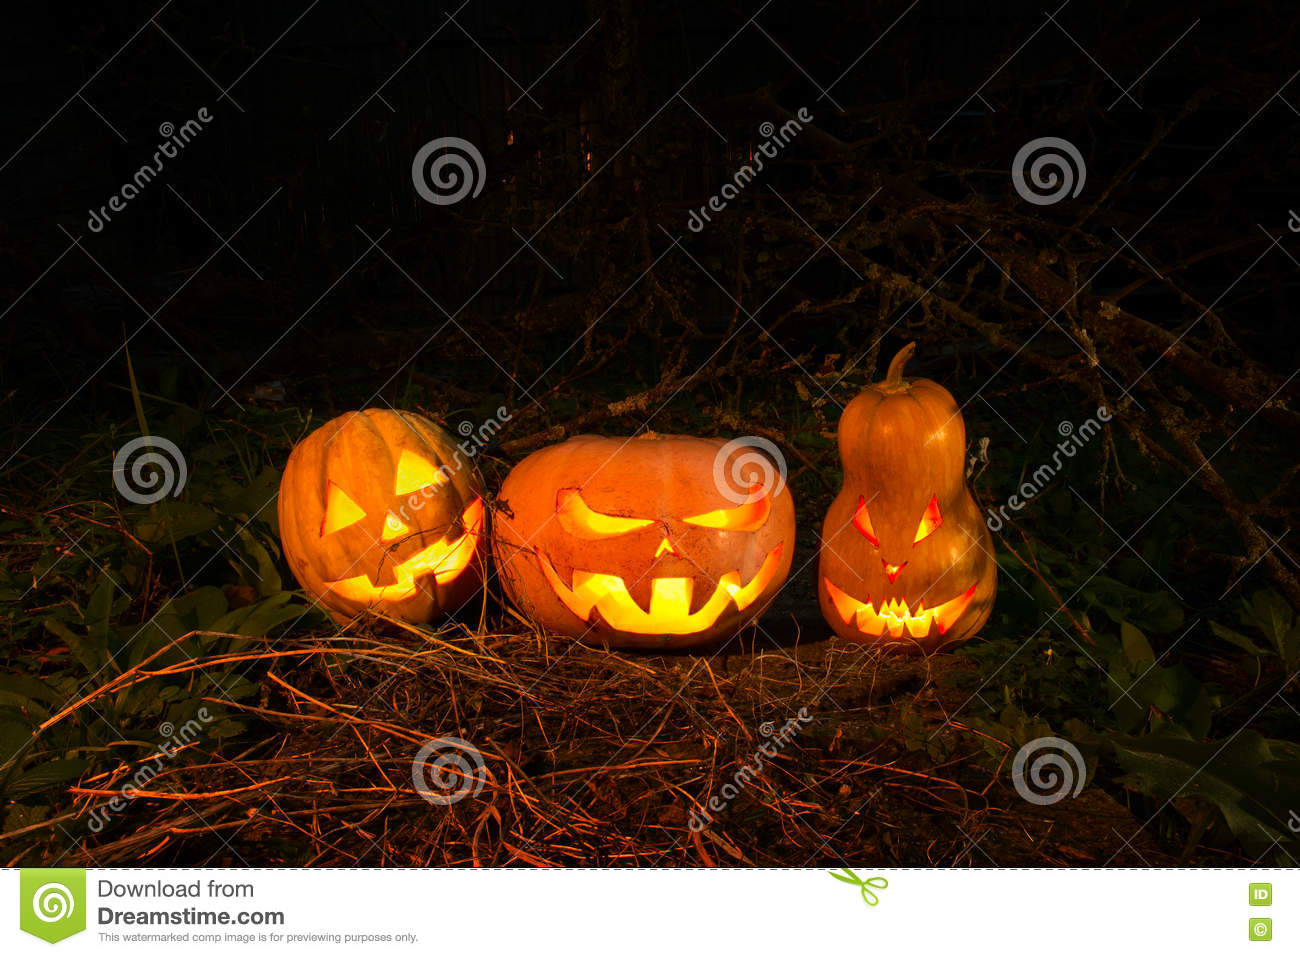 Halloween three pumpkins scary funny and creepy in the woods on